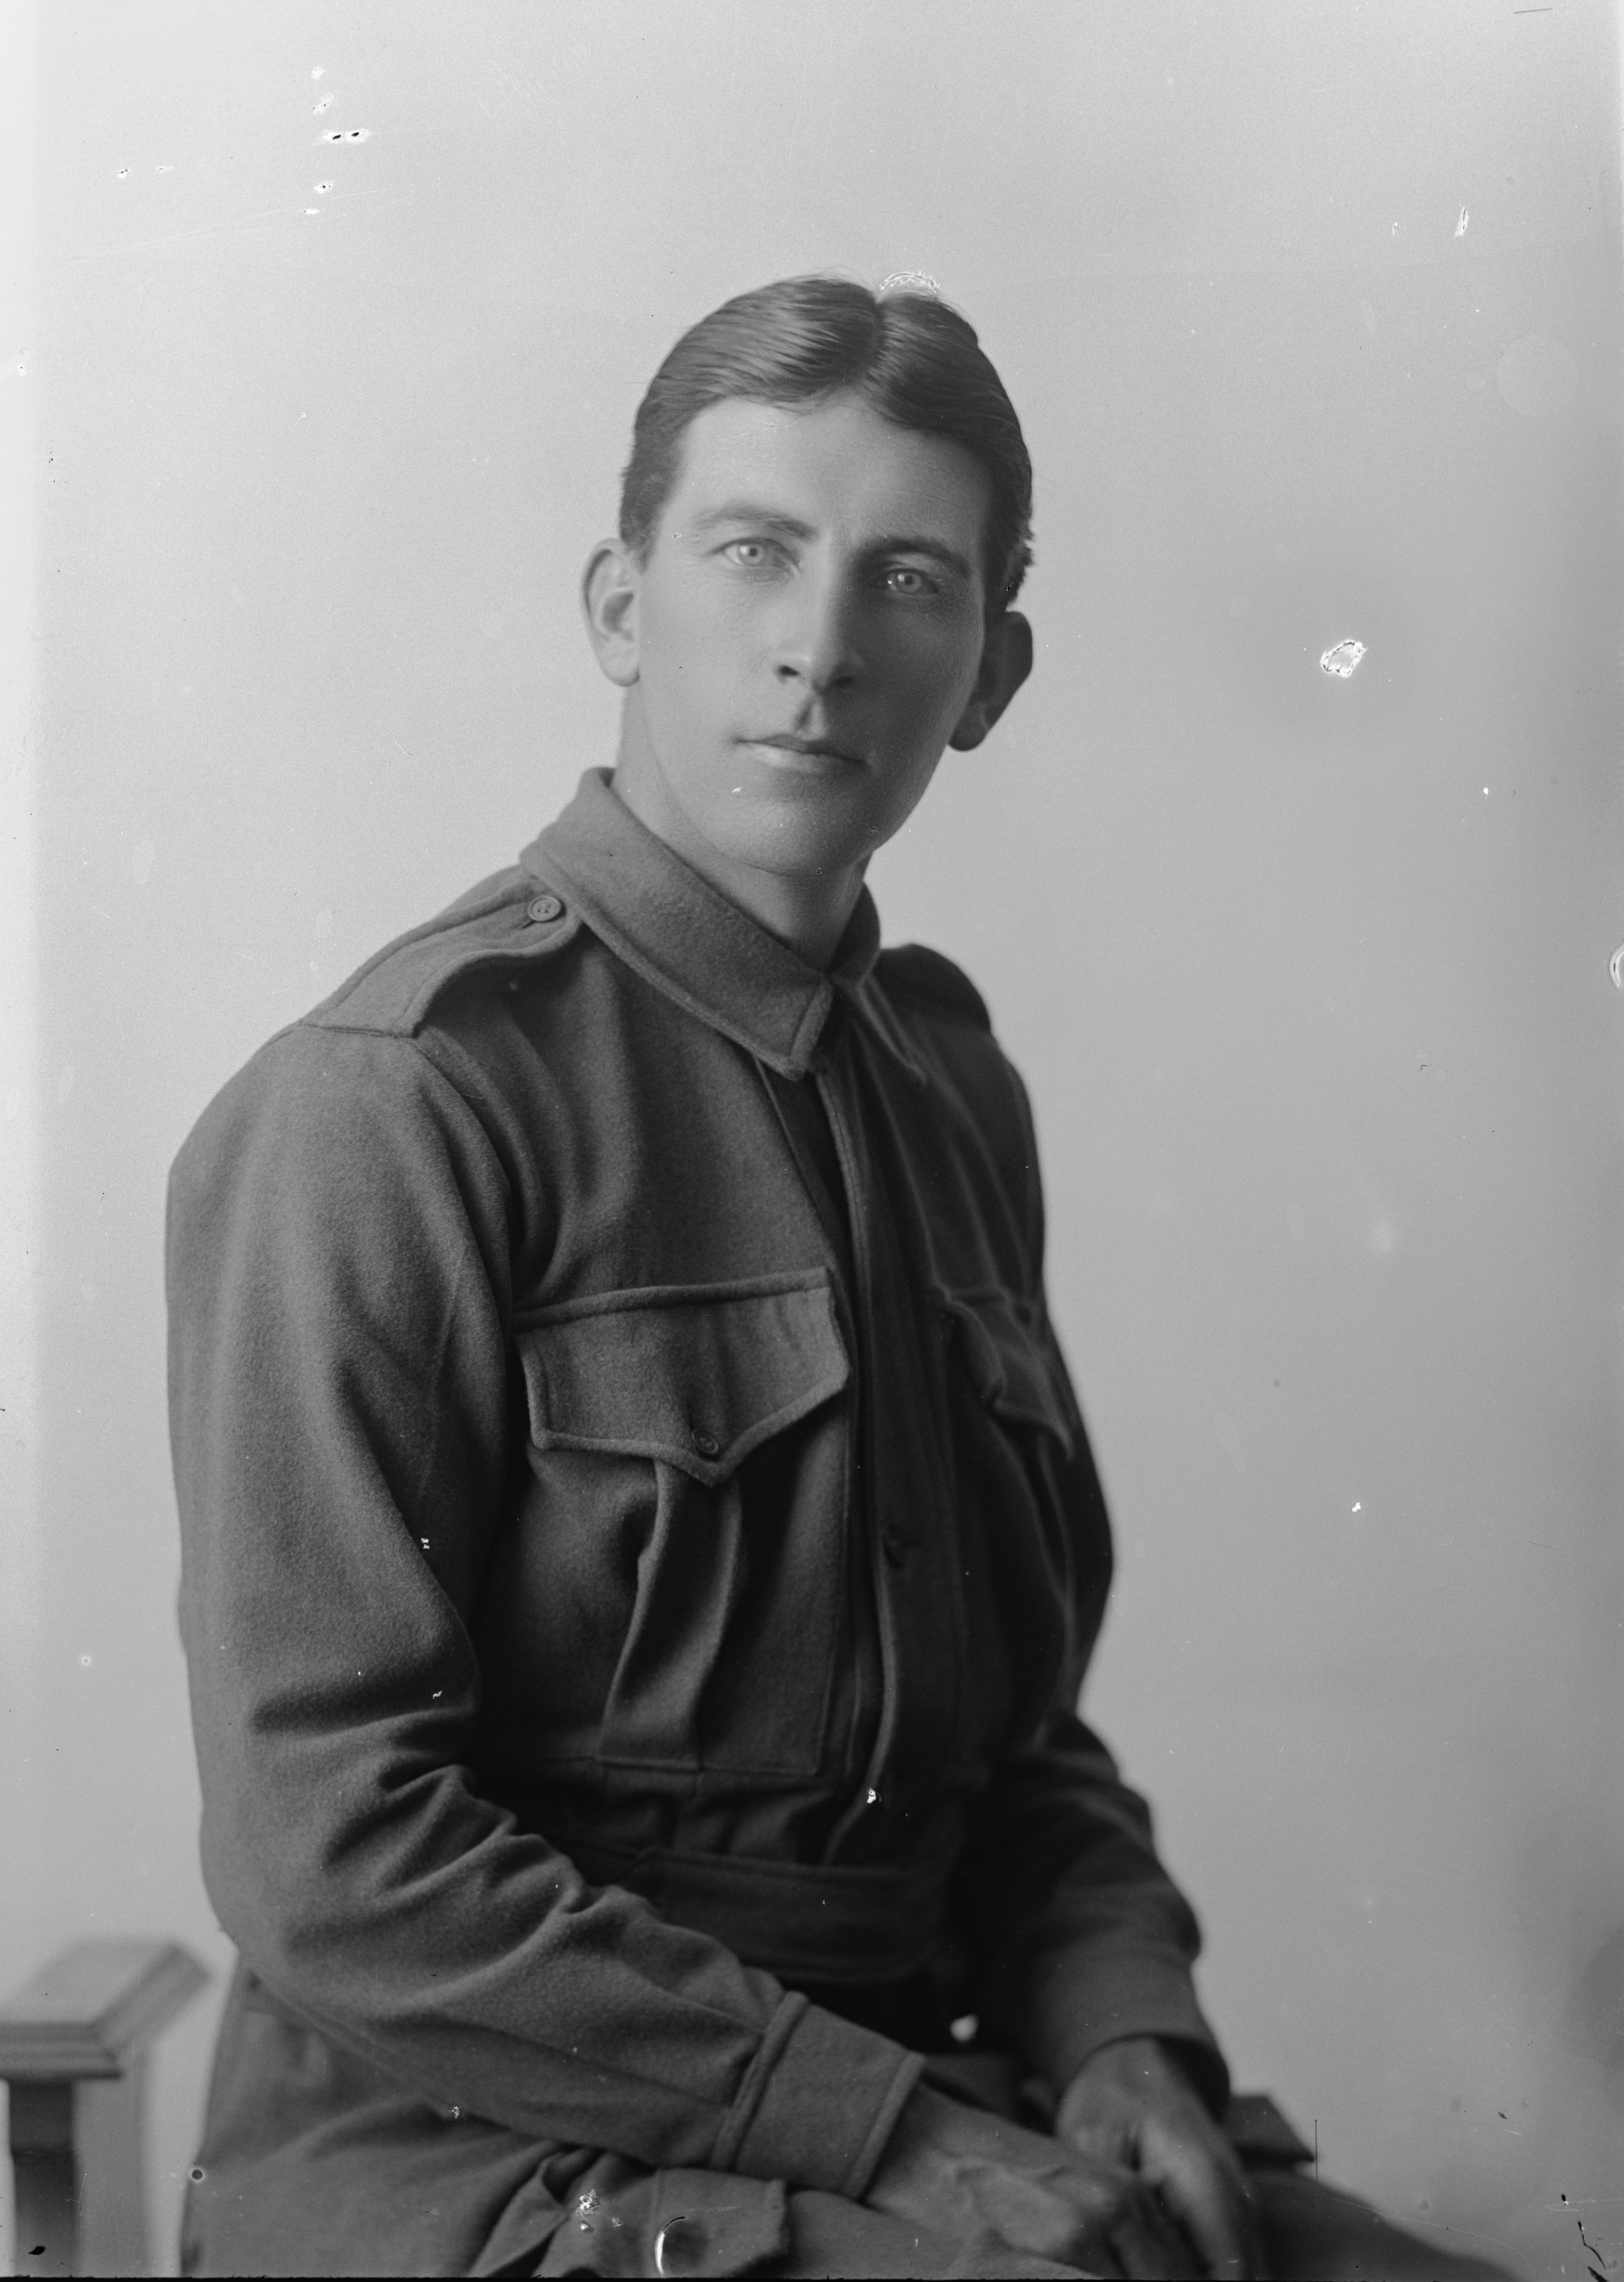 Photographed at the Dease Studio, 117 Barrack Street Perth WA Image courtesy of the State Library of Western Australia: 108194PD